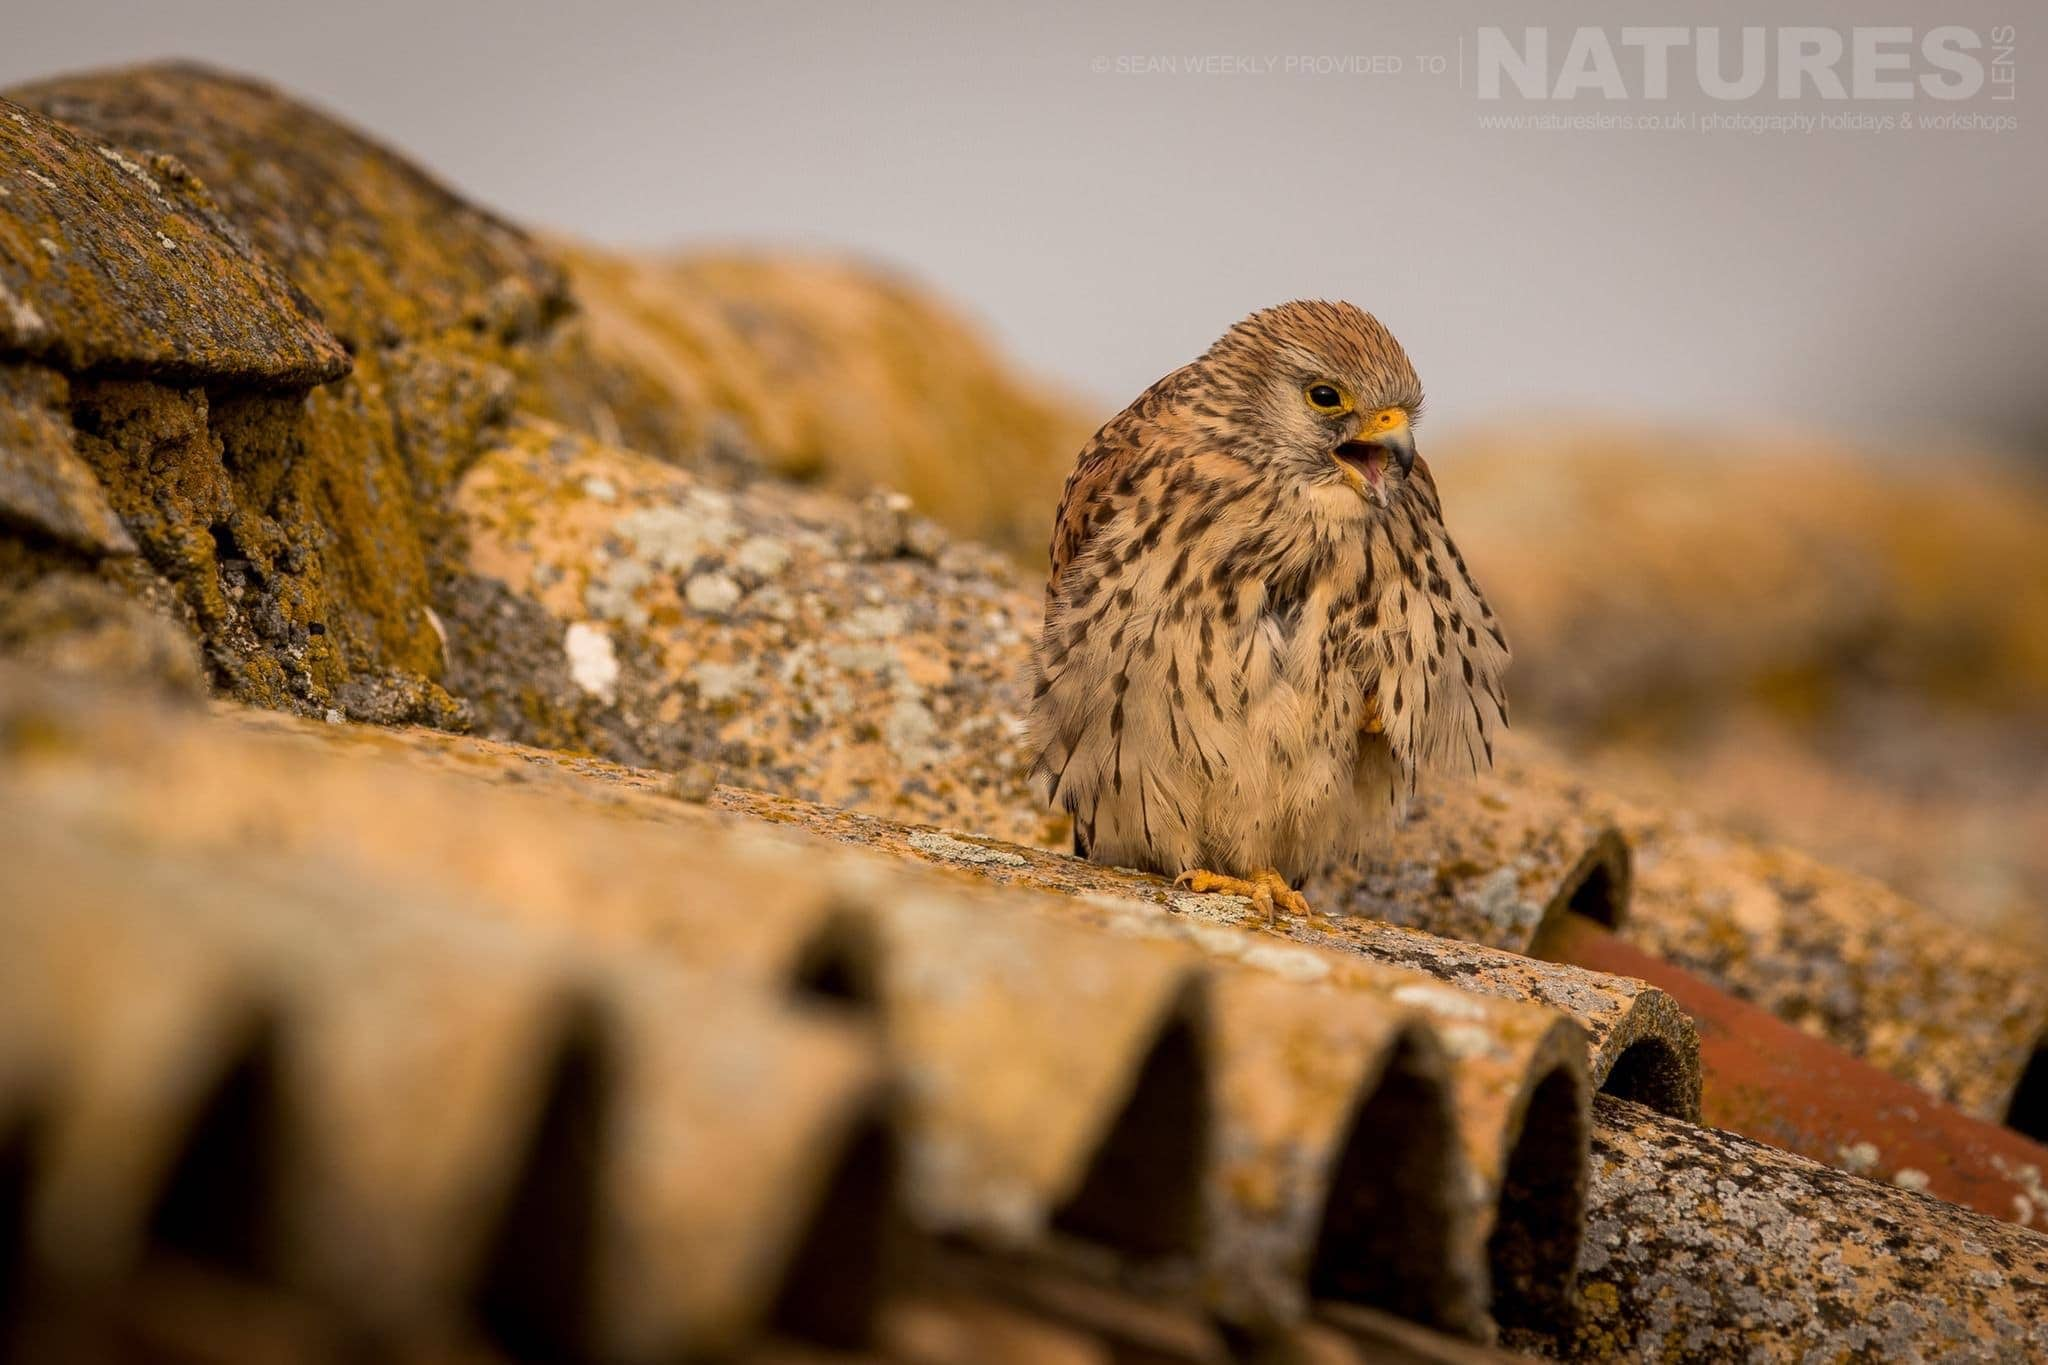 A Lesser Kestrel Calls To Another On The Rooftop Of A Derelict Farm Building   Image Captured During The 2018 Spanish Bird Photography Holiday In Calera